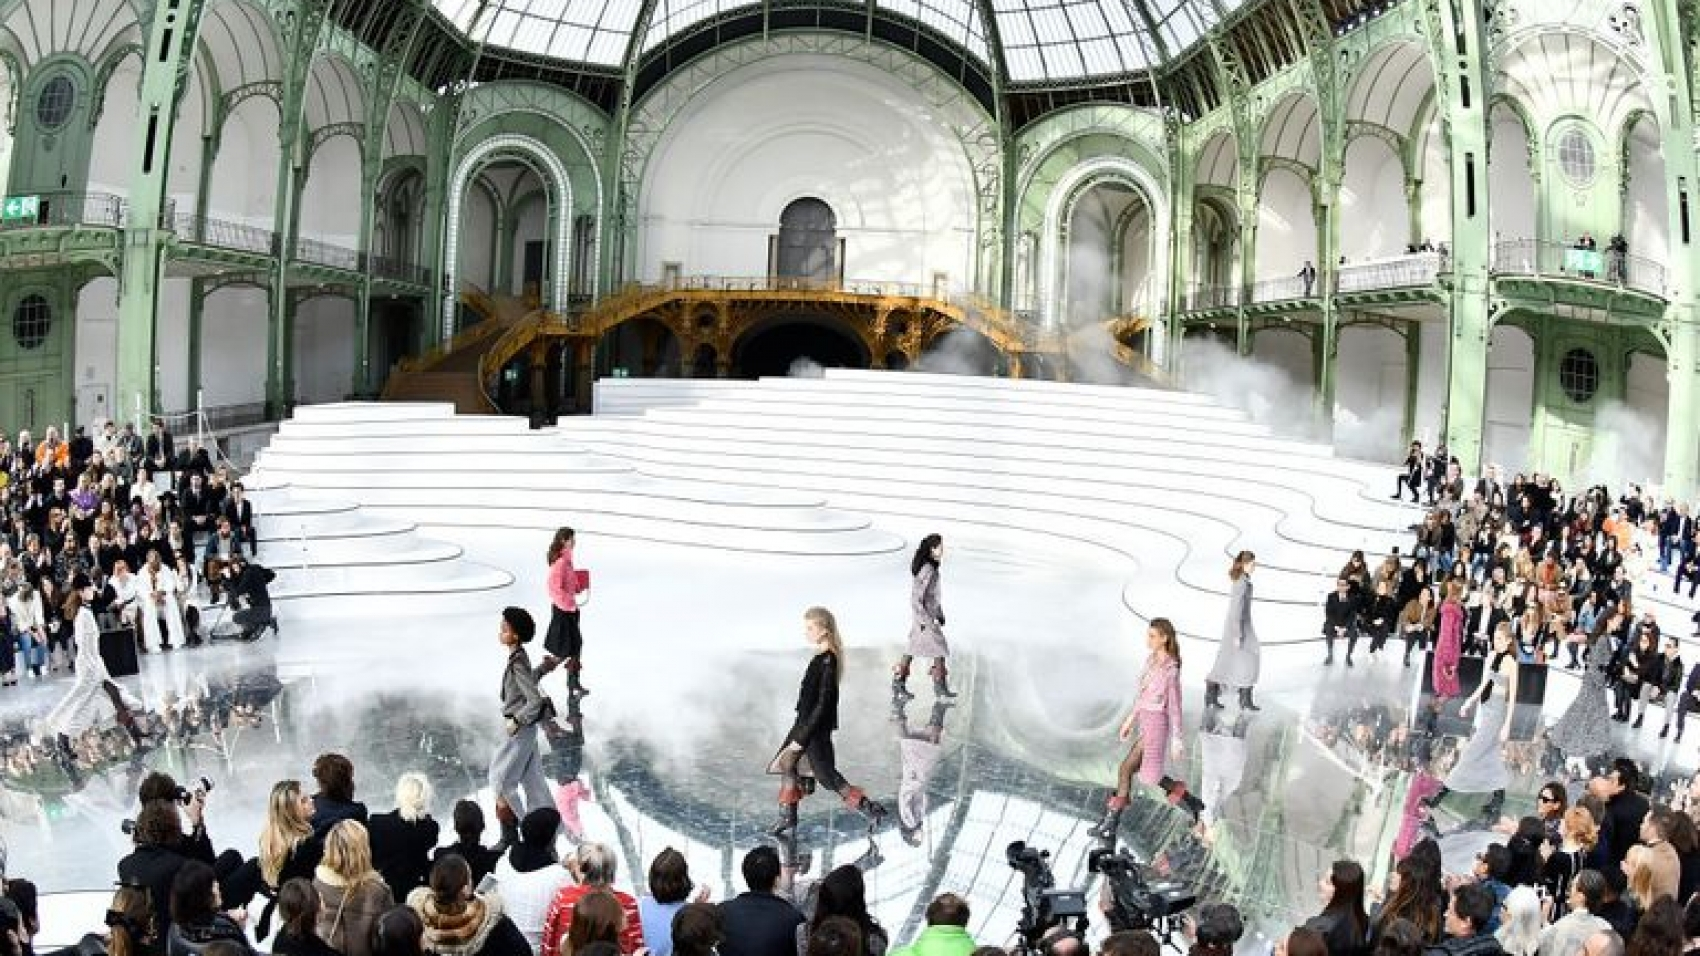 model-walks-the-runway-during-the-chanel-ready-to-wear-news-photo-1583251442